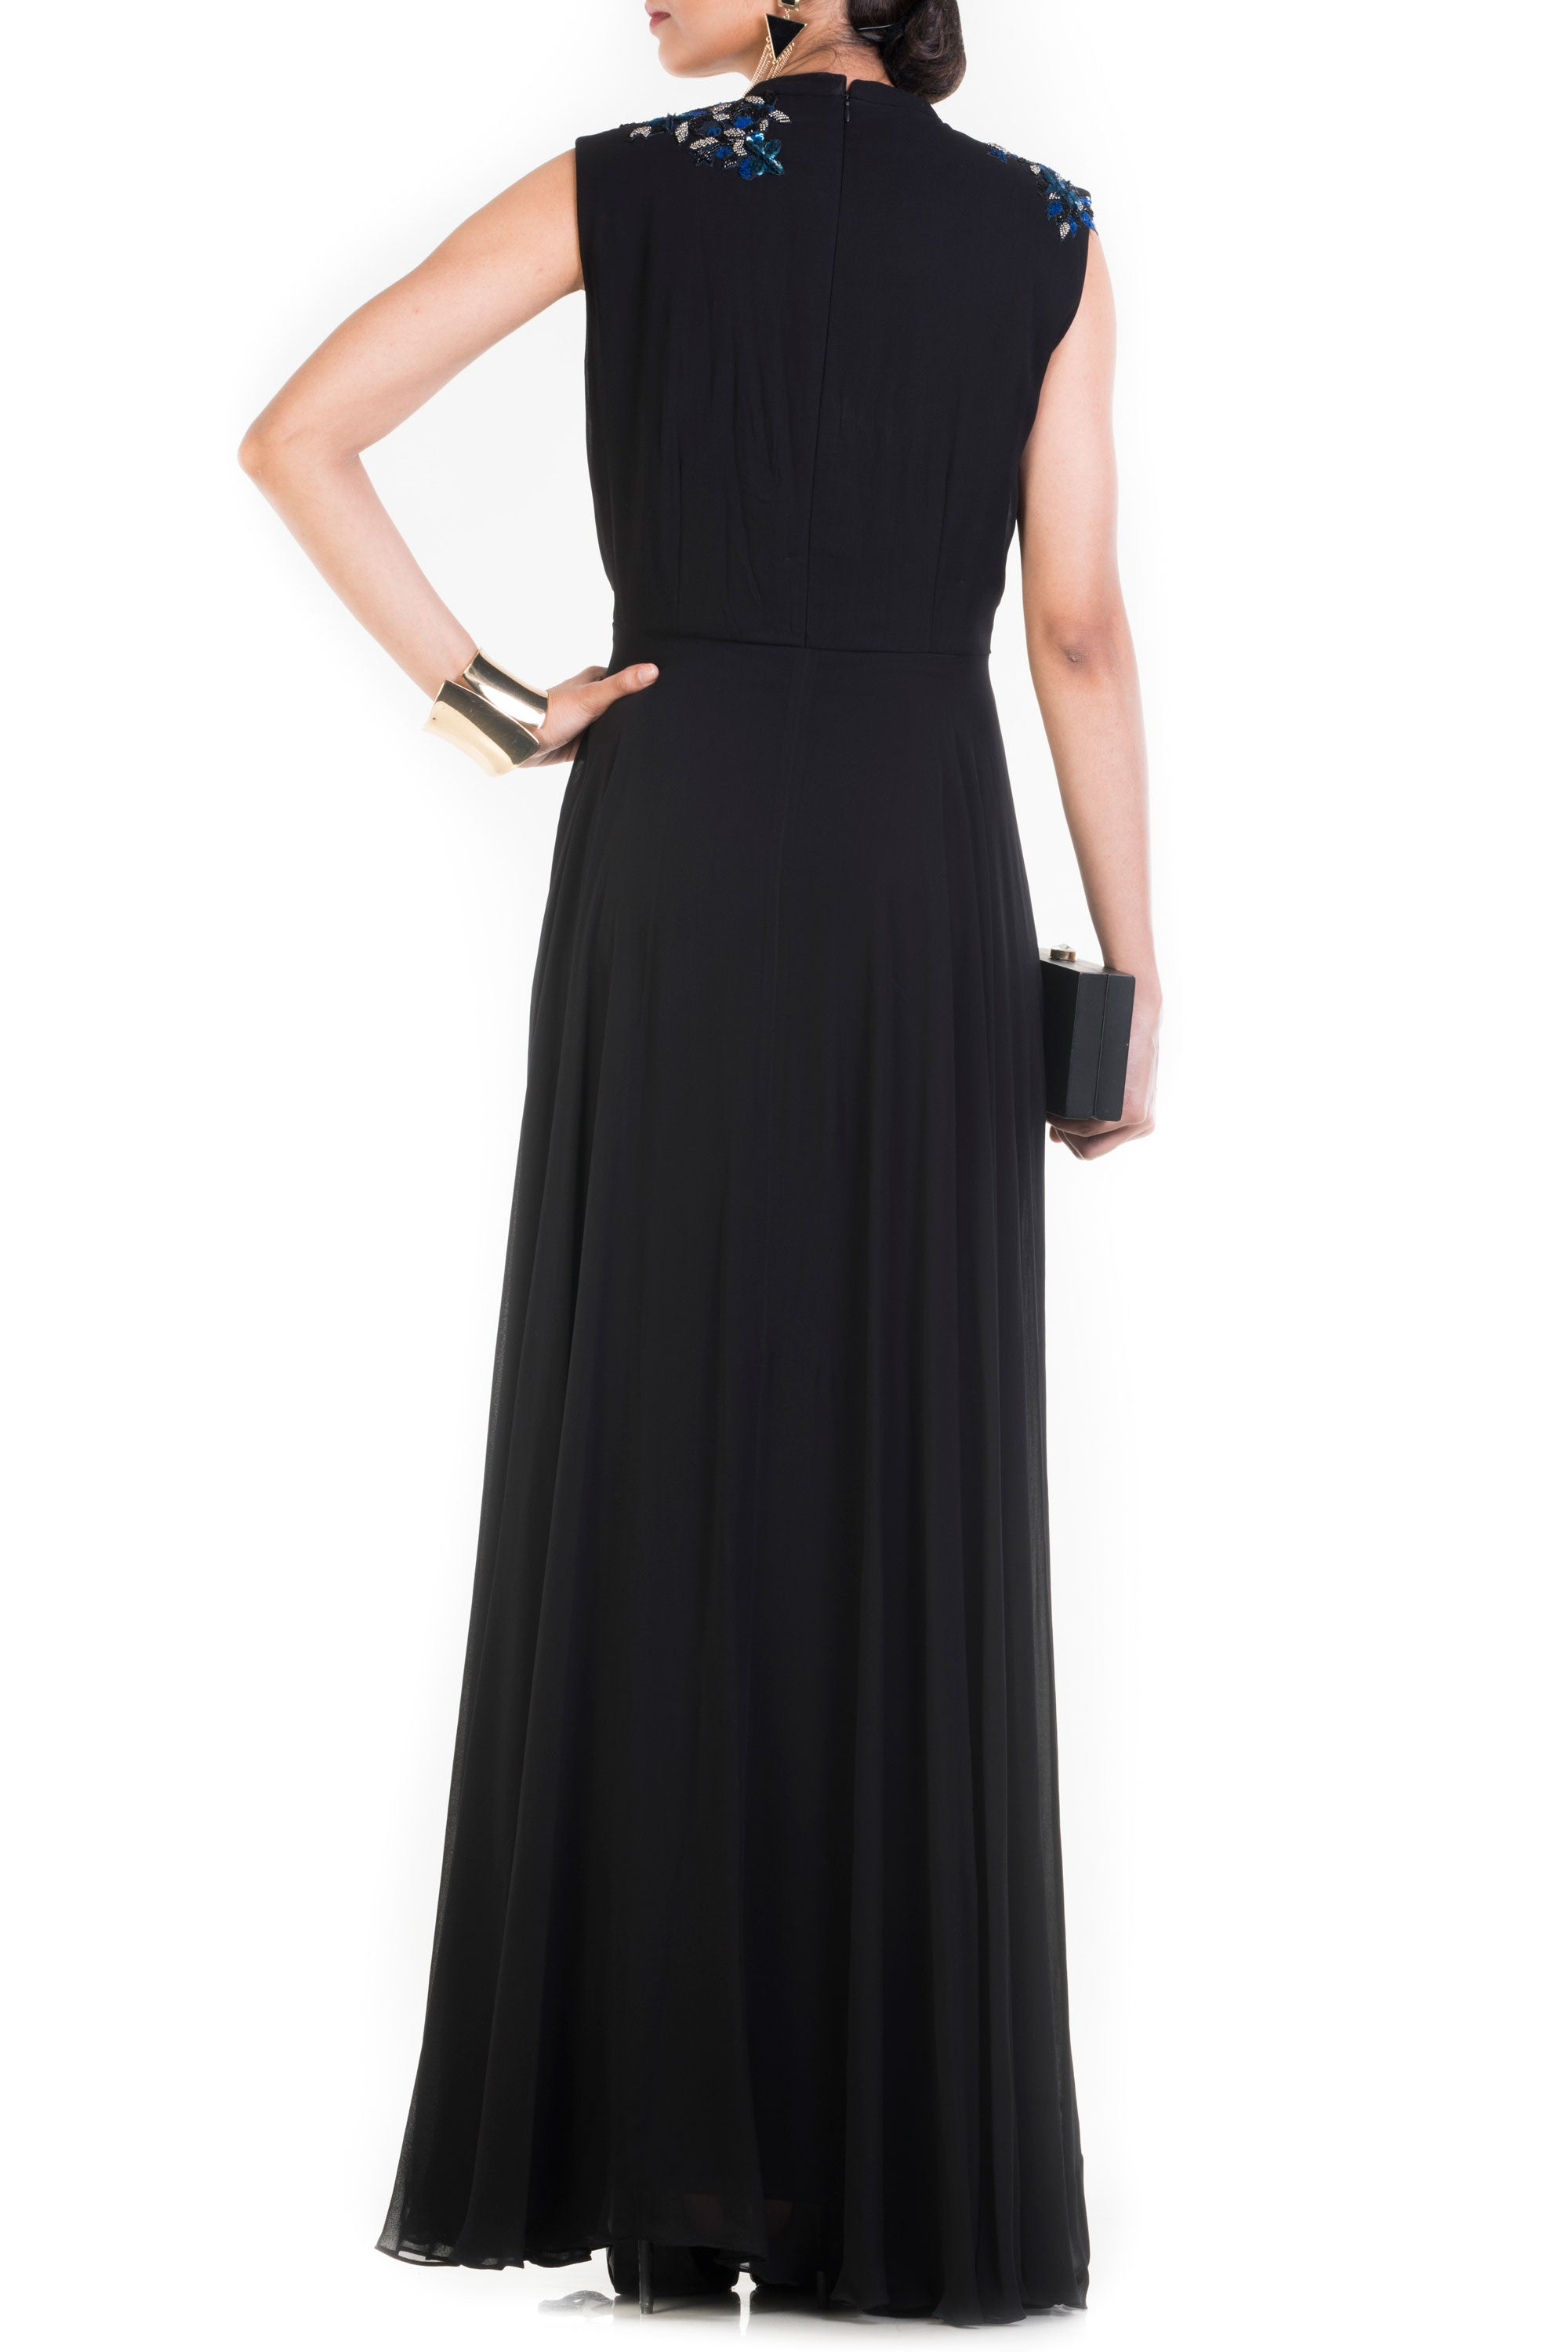 Jet Black Long V Neck Sleeveless Gown Back